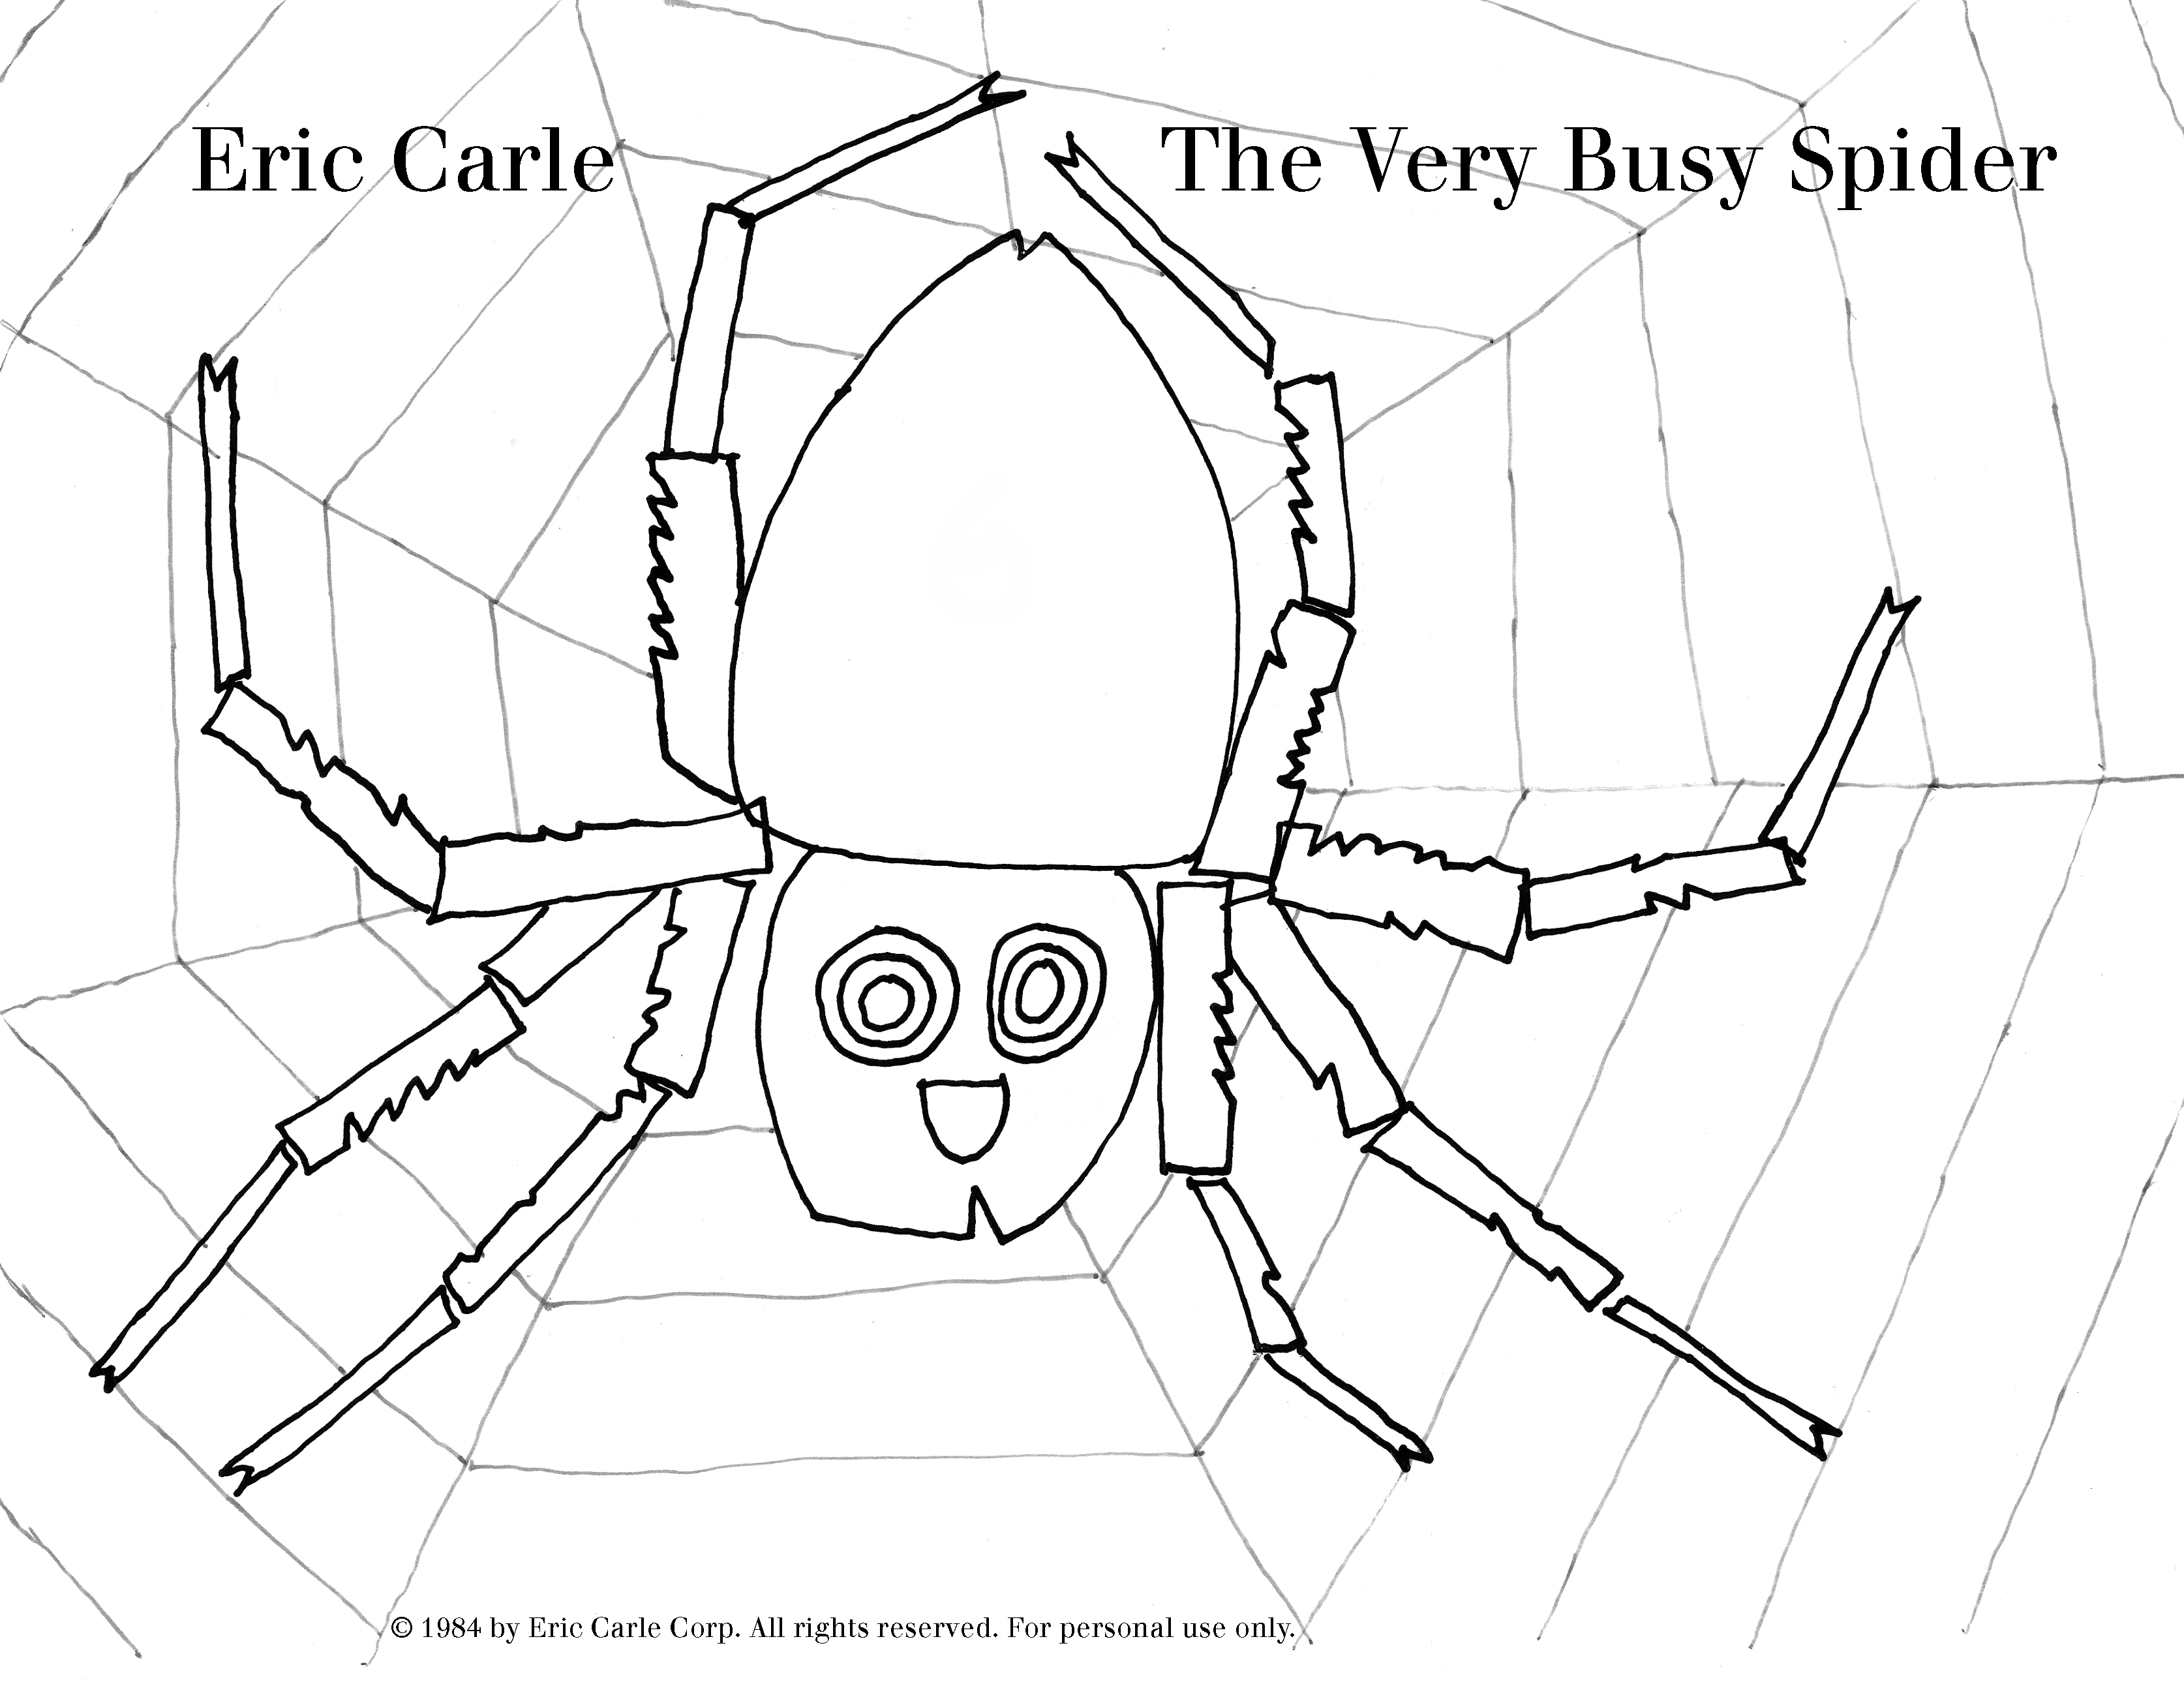 Hungry Caterpillar Coloring Pages The Official Eric Carle Web Site Coloring Page